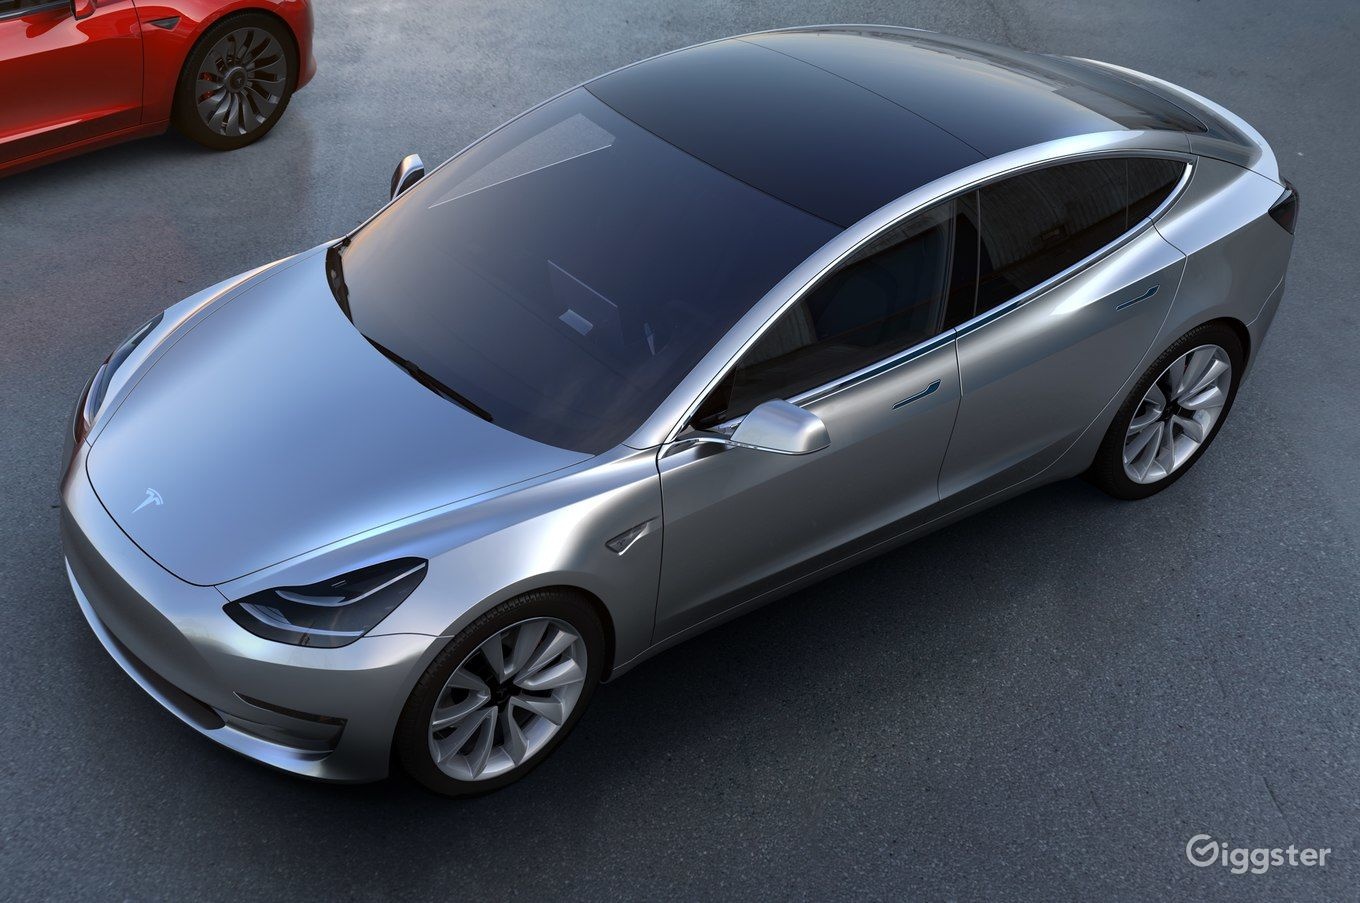 Model 3 Tesla - Silver | Rent this location on Giggster